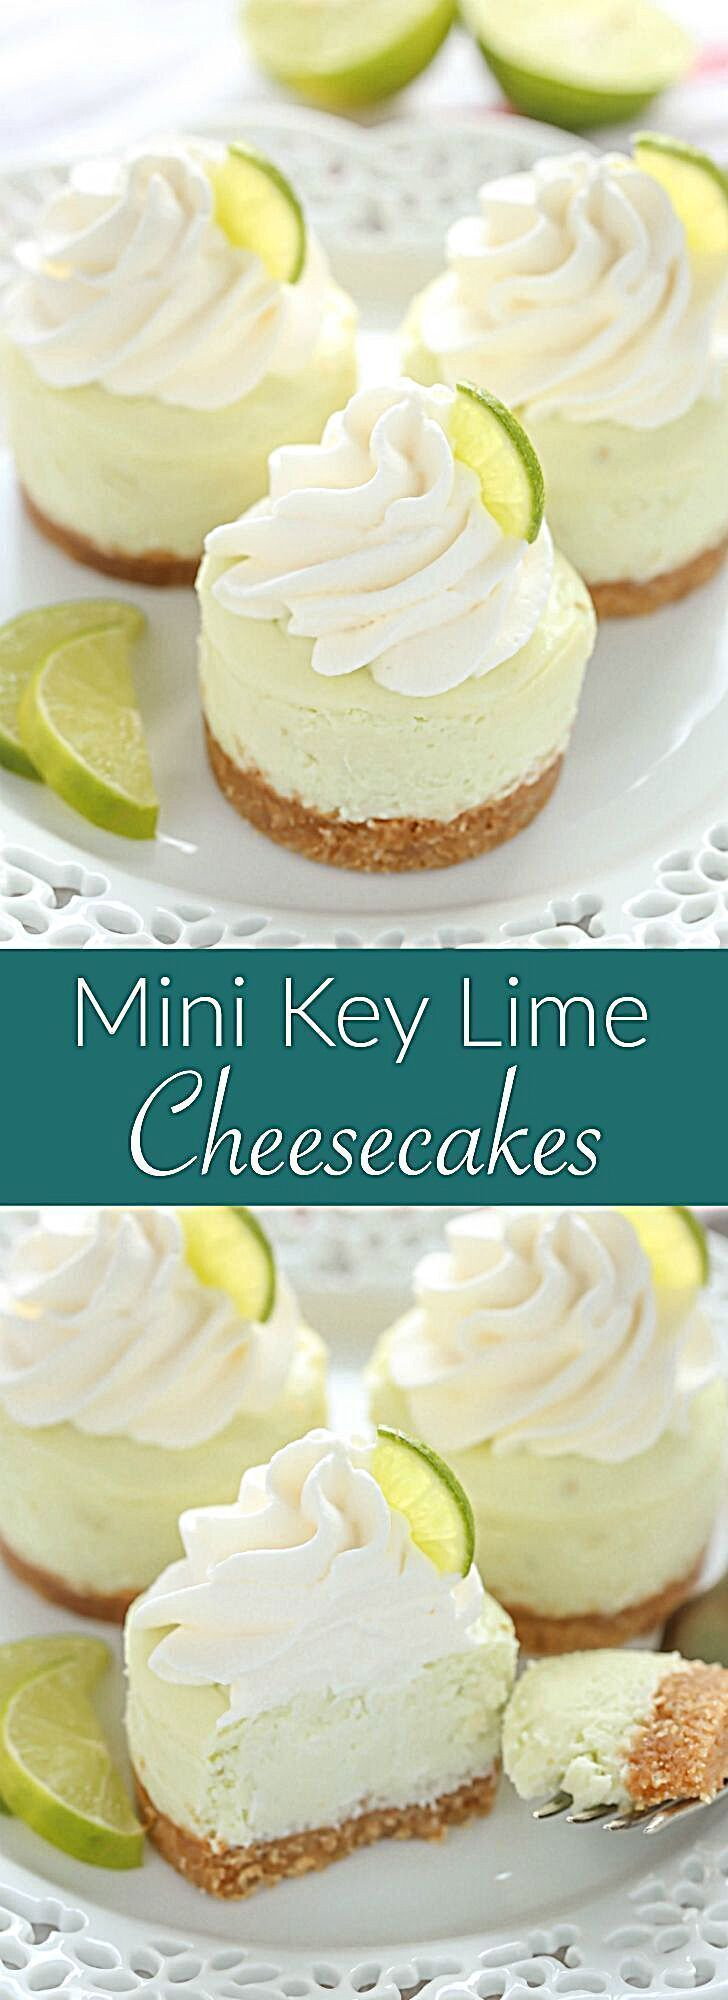 These Mini Key Lime Cheesecakes feature an easy homemade graham cracker crust topped with a smooth and creamy key lime cheesecake filling. The perfect dessert for any time of year! #foodrecipe #keylime #keylimepie #pie #dessert #limes #nobake #minidessert #sweets